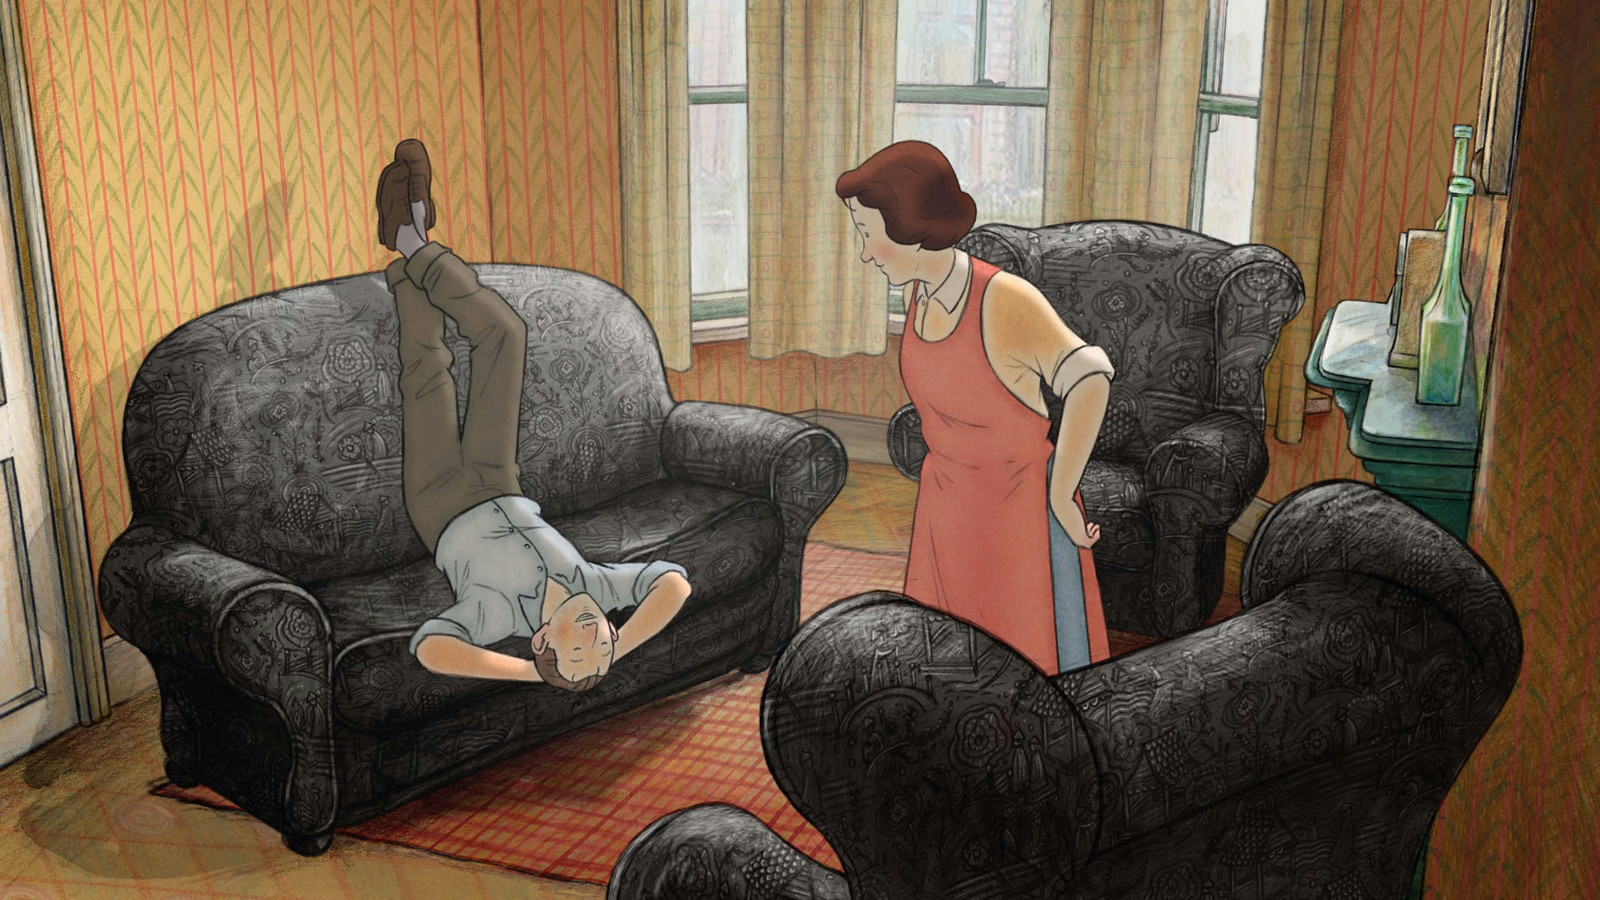 Working-class Brits keep calm and carry on in animated 'Ethel & Ernest'